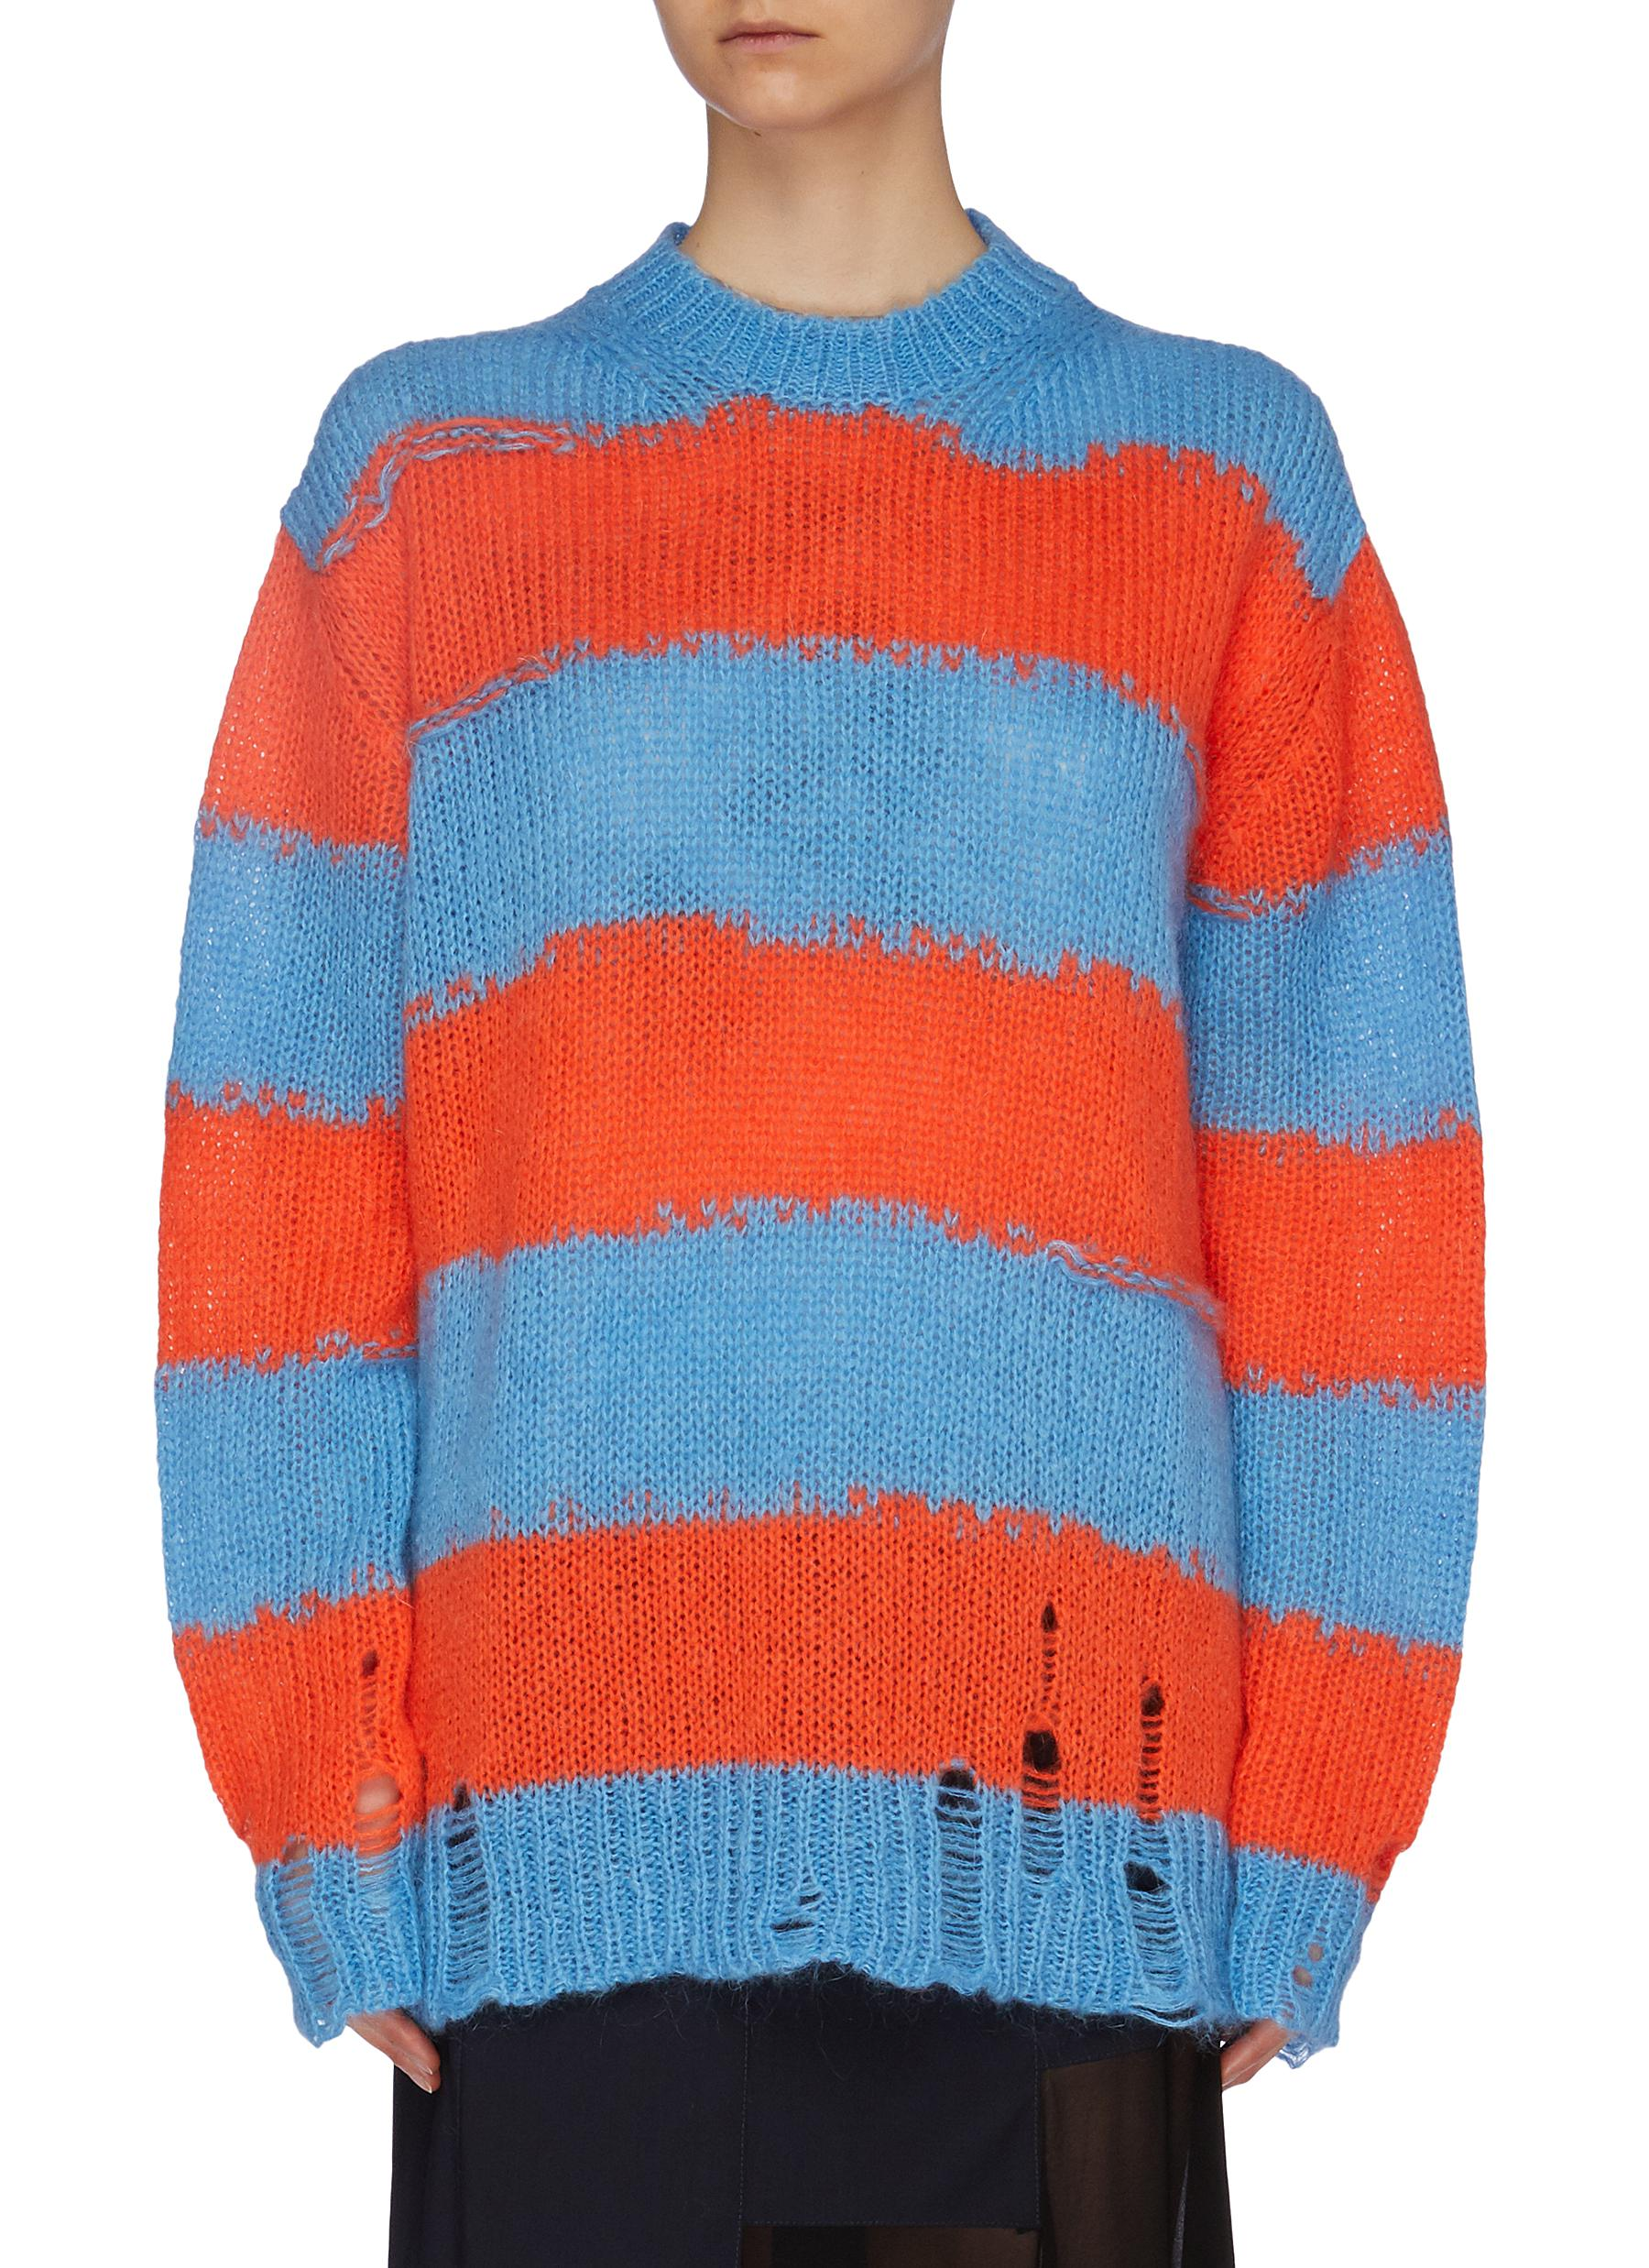 Distressed stripe oversized sweater by Acne Studios